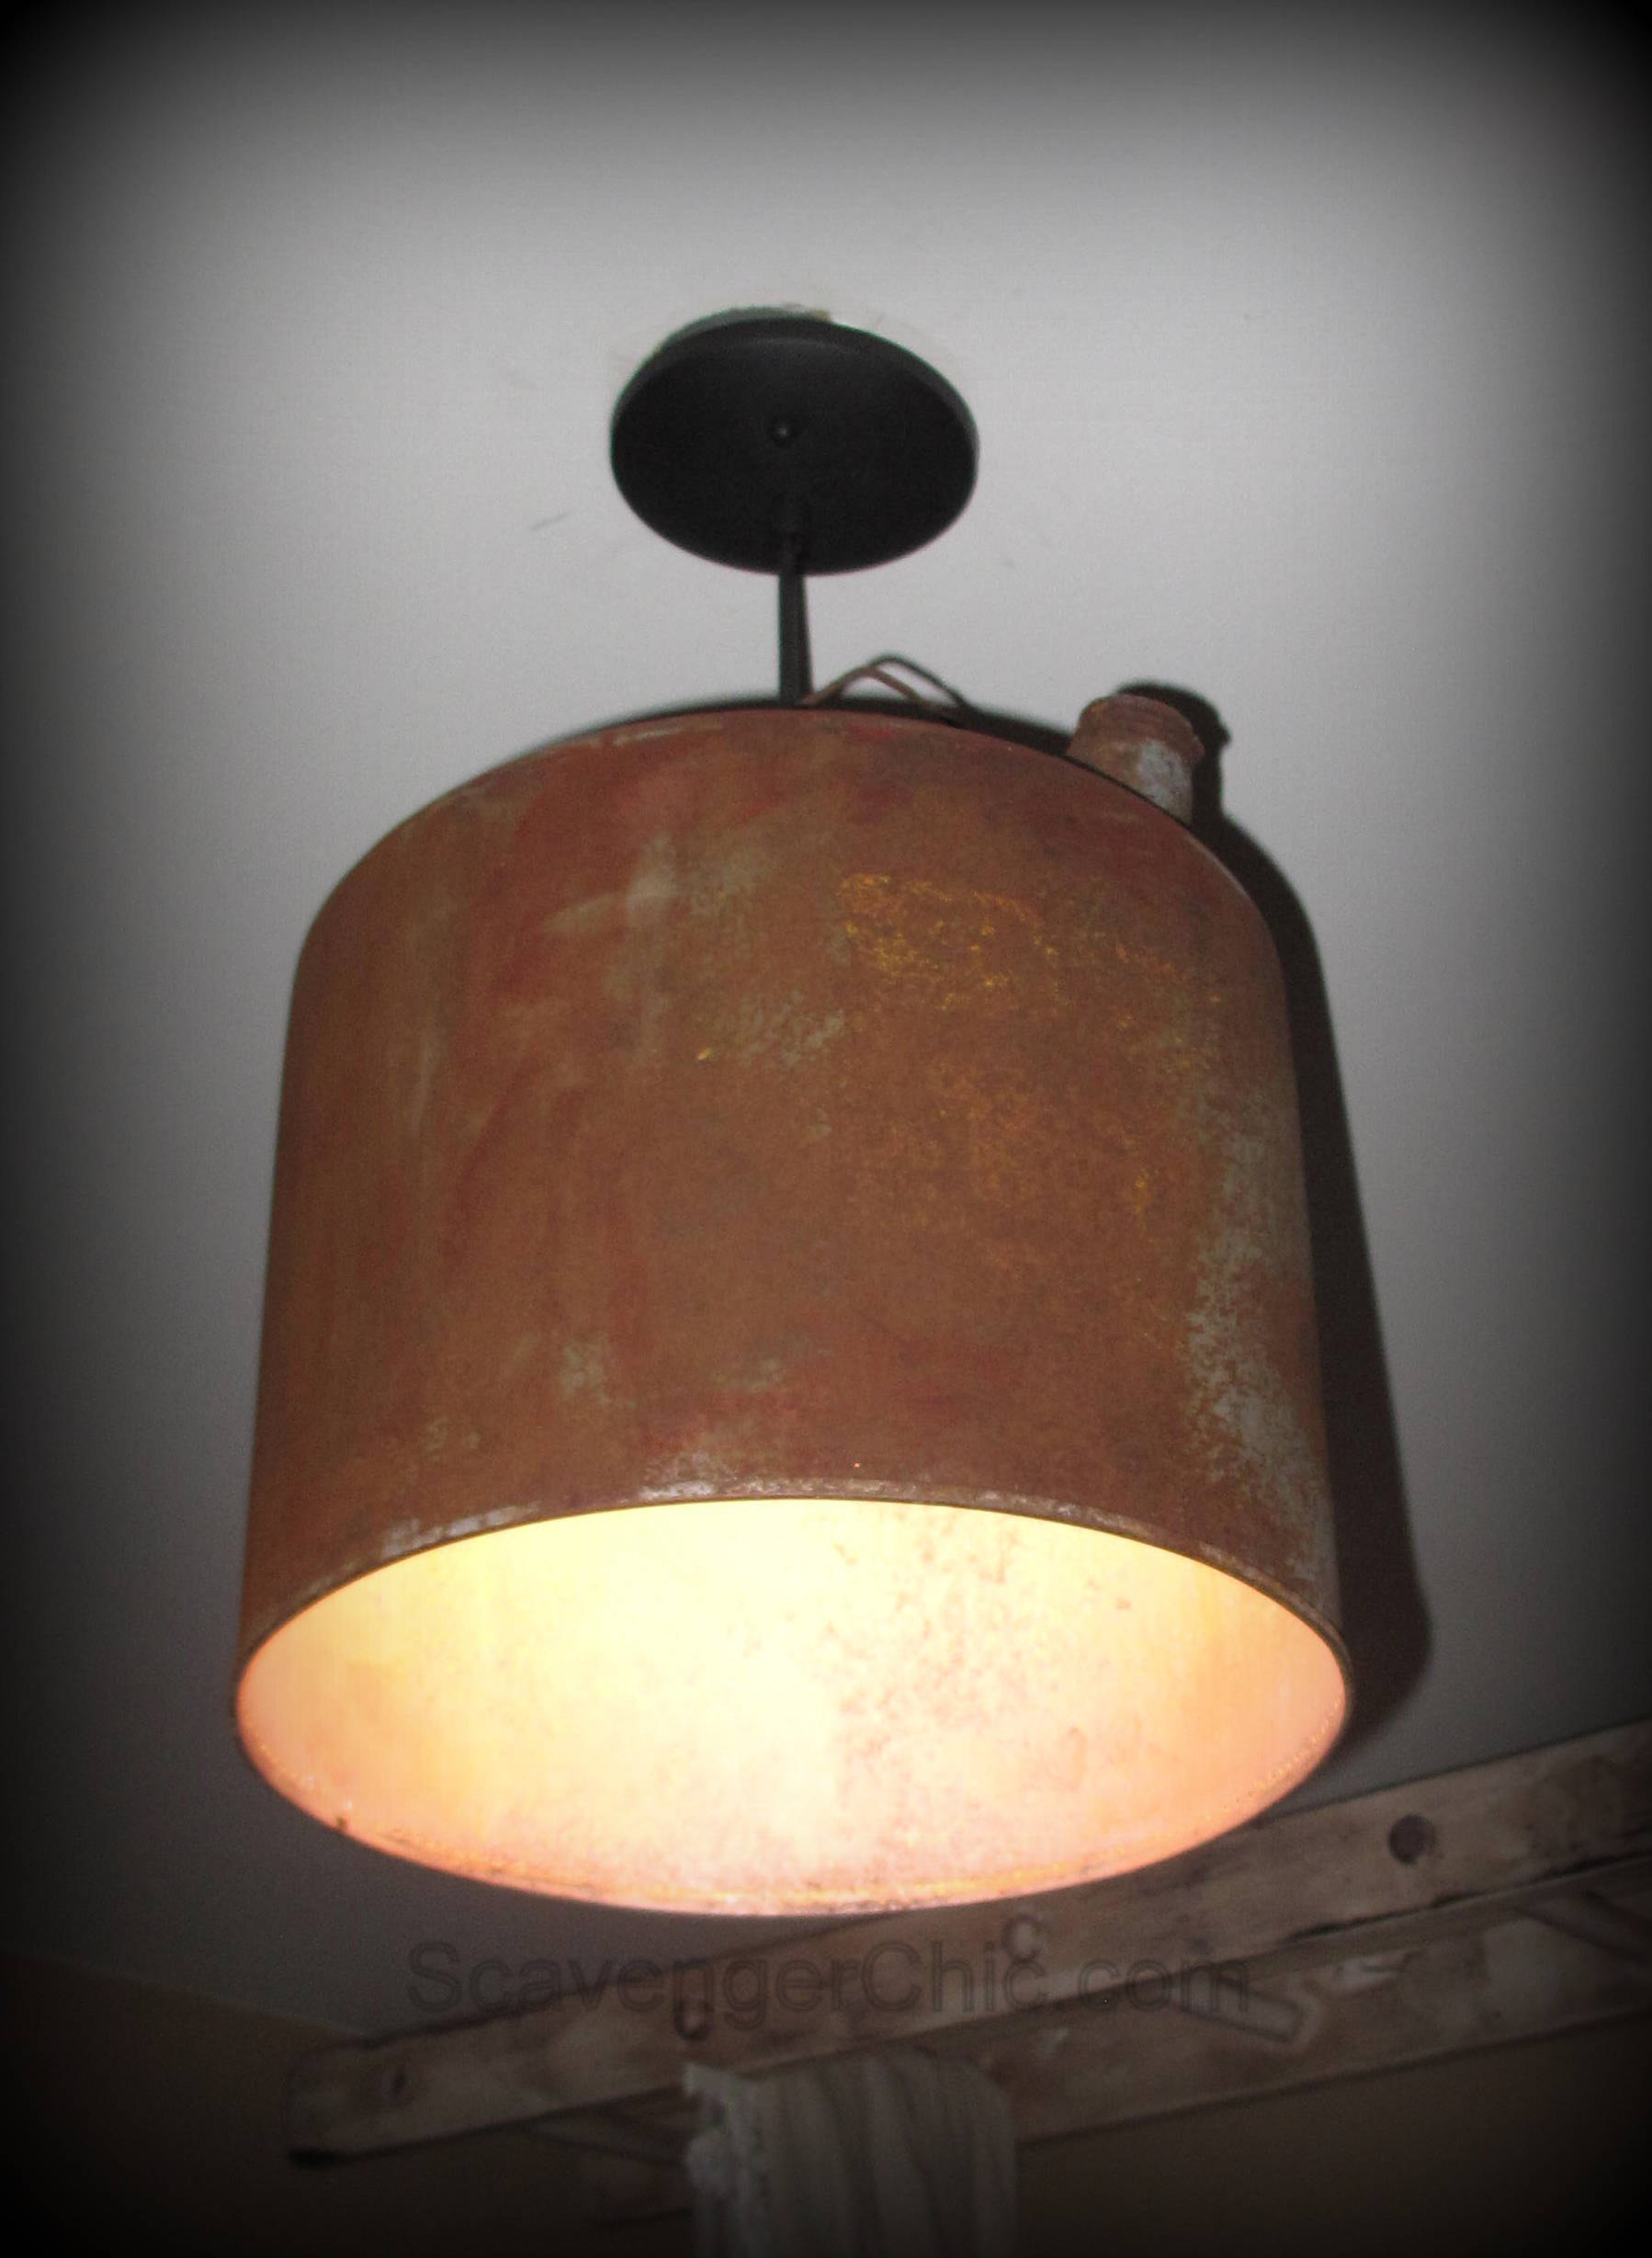 Favorite Upcycled Gasoline Can Pendant Light diy – Scavenger Chic NW39